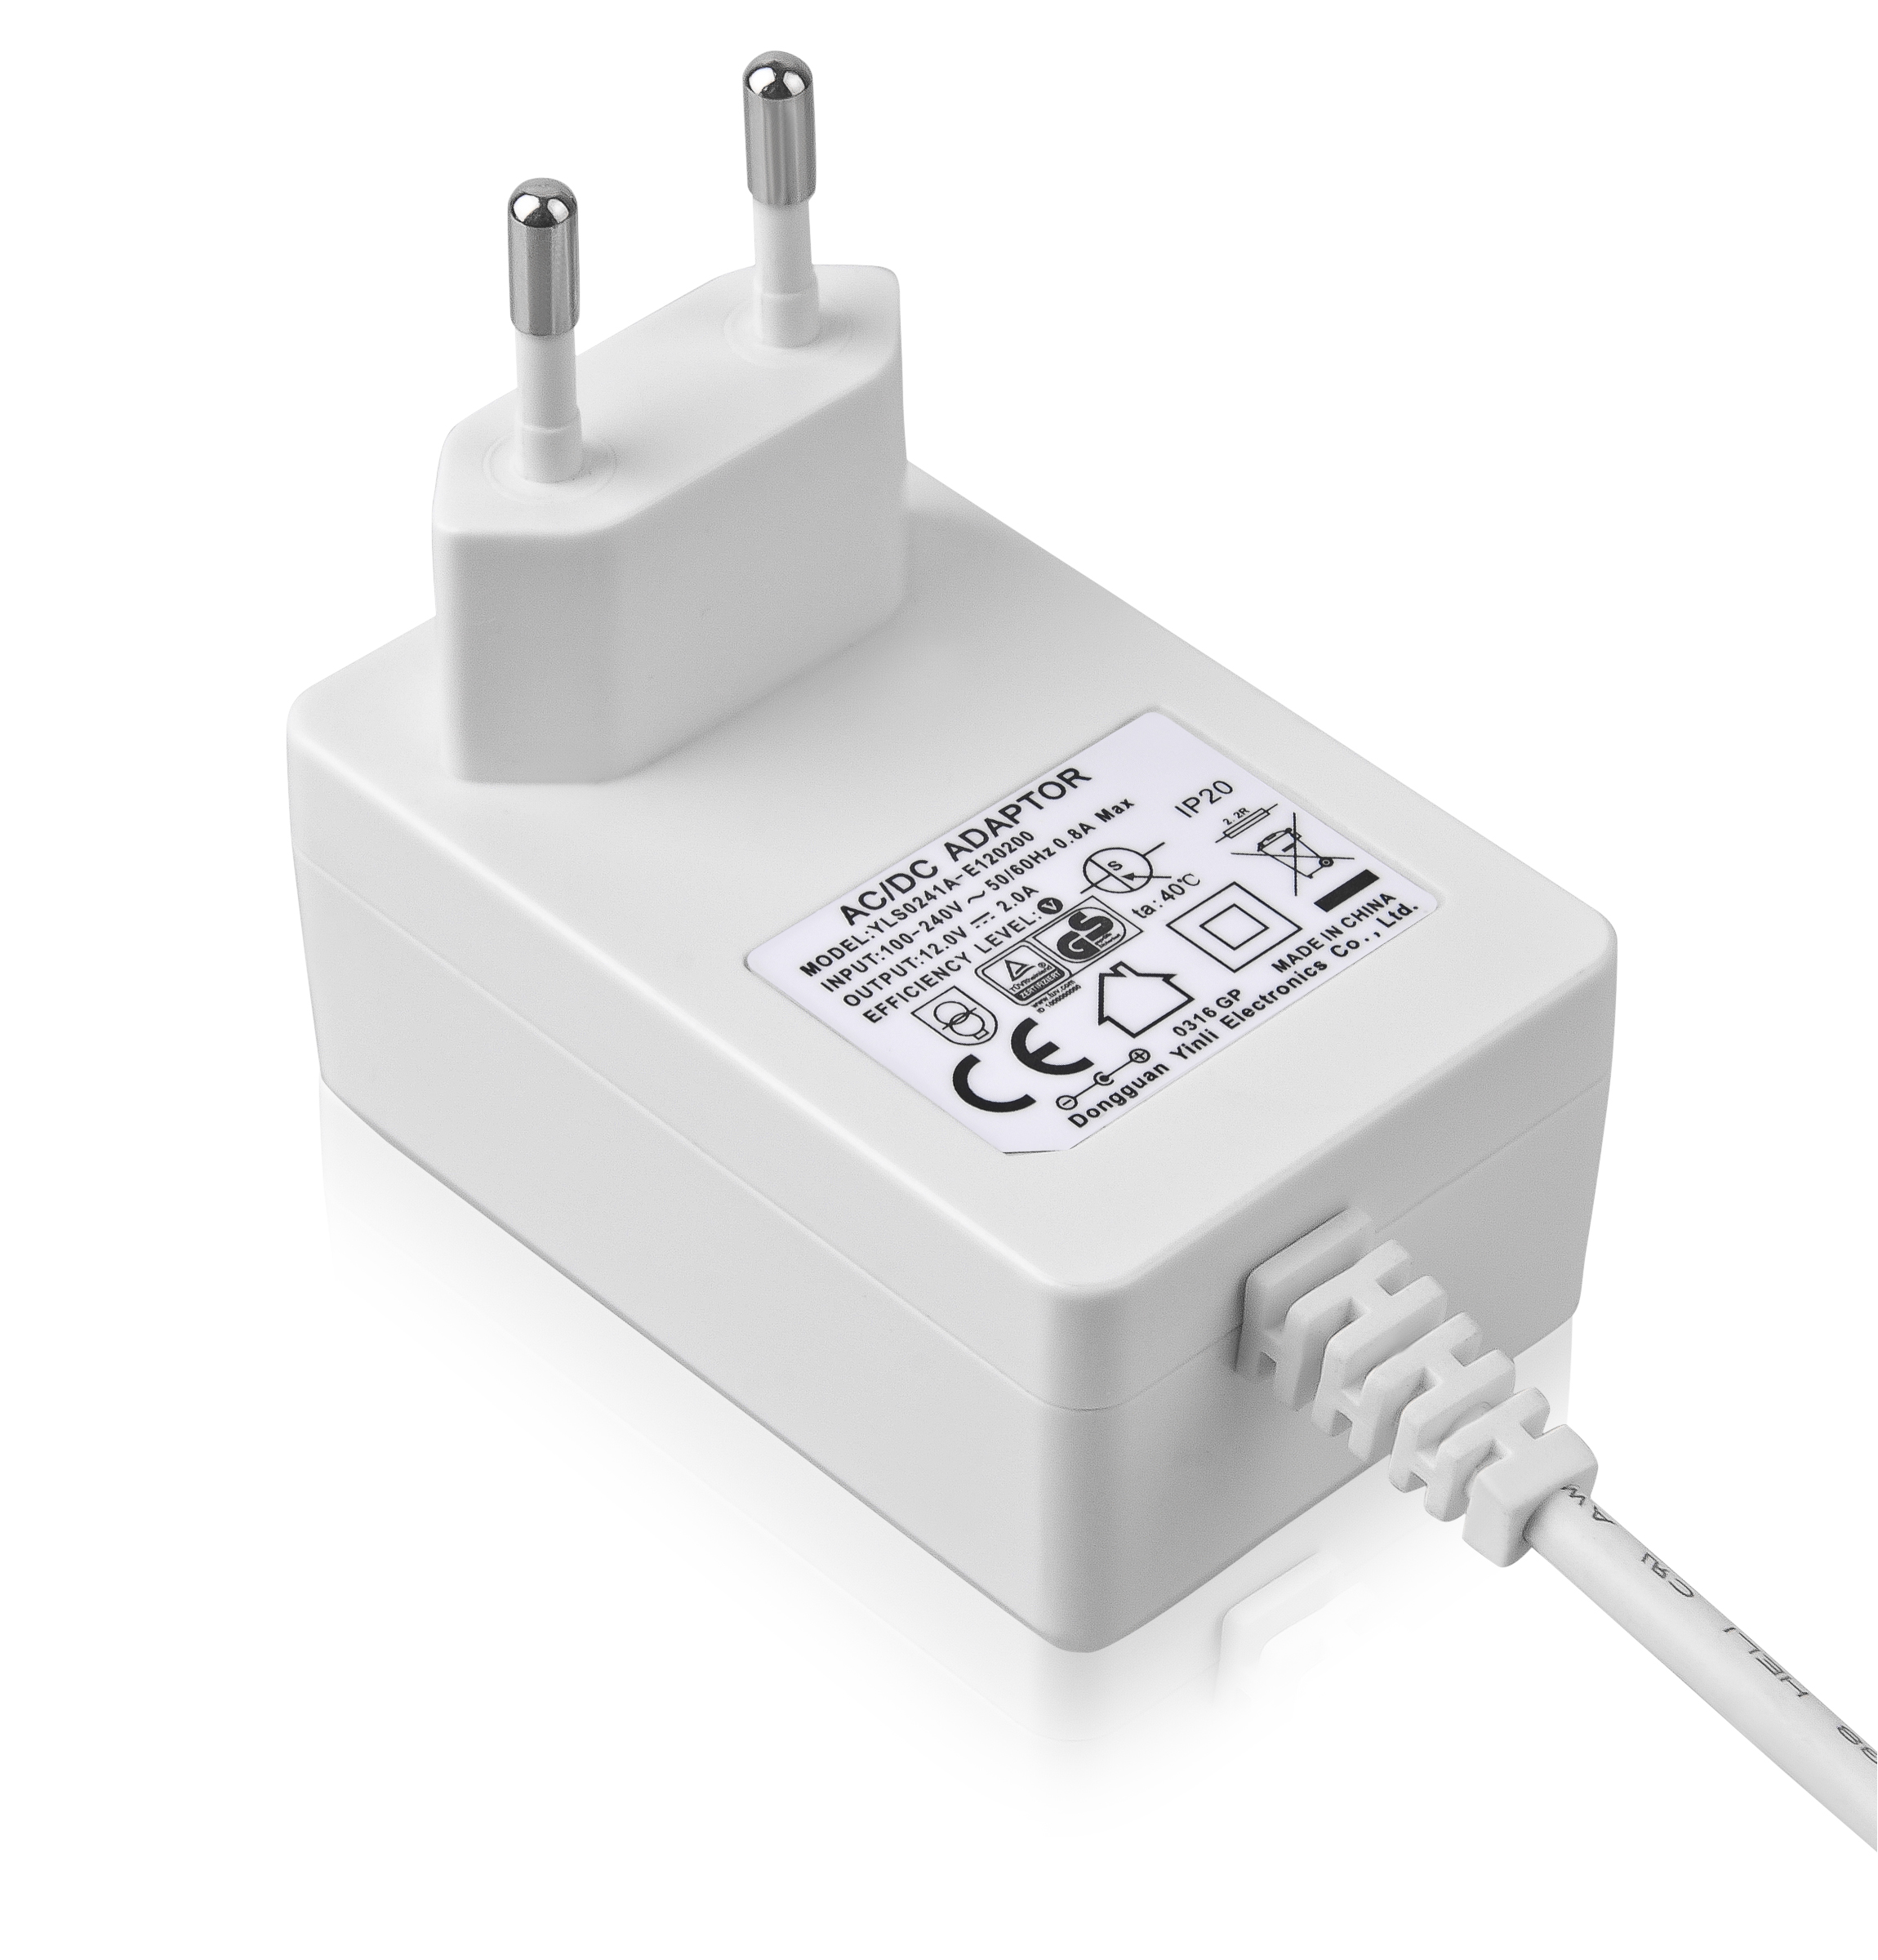 220V 50hZ 5V 12V 15V 20V 1A 2A 3A 4A 5A EU USB power adapter European type C power supply CE certificate power adapter